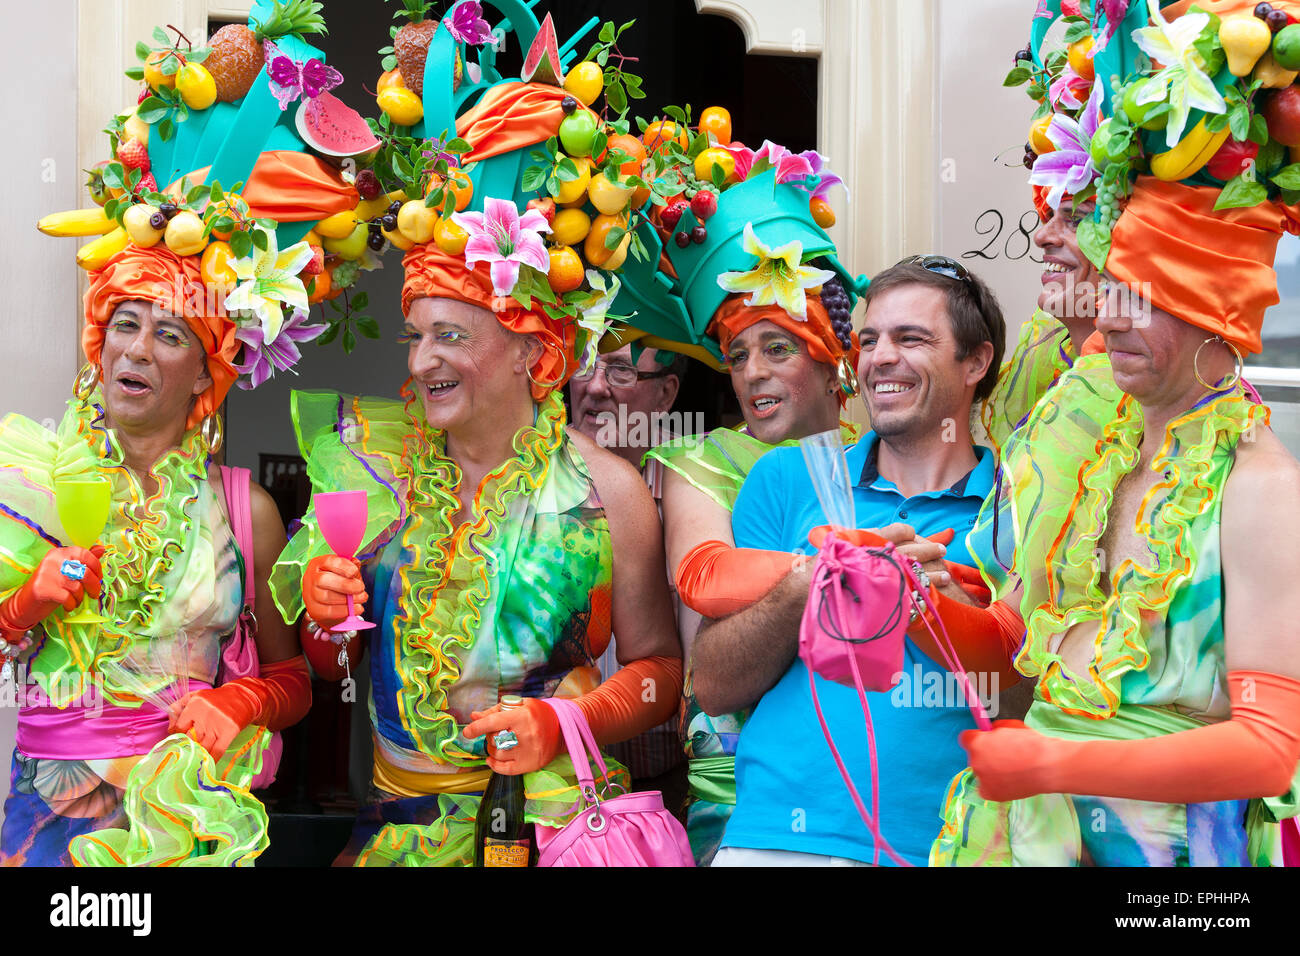 https://c7.alamy.com/comp/EPHHPA/a-visitor-to-the-amsterdam-gay-pride-canal-parade-poses-with-5-carmen-EPHHPA.jpg